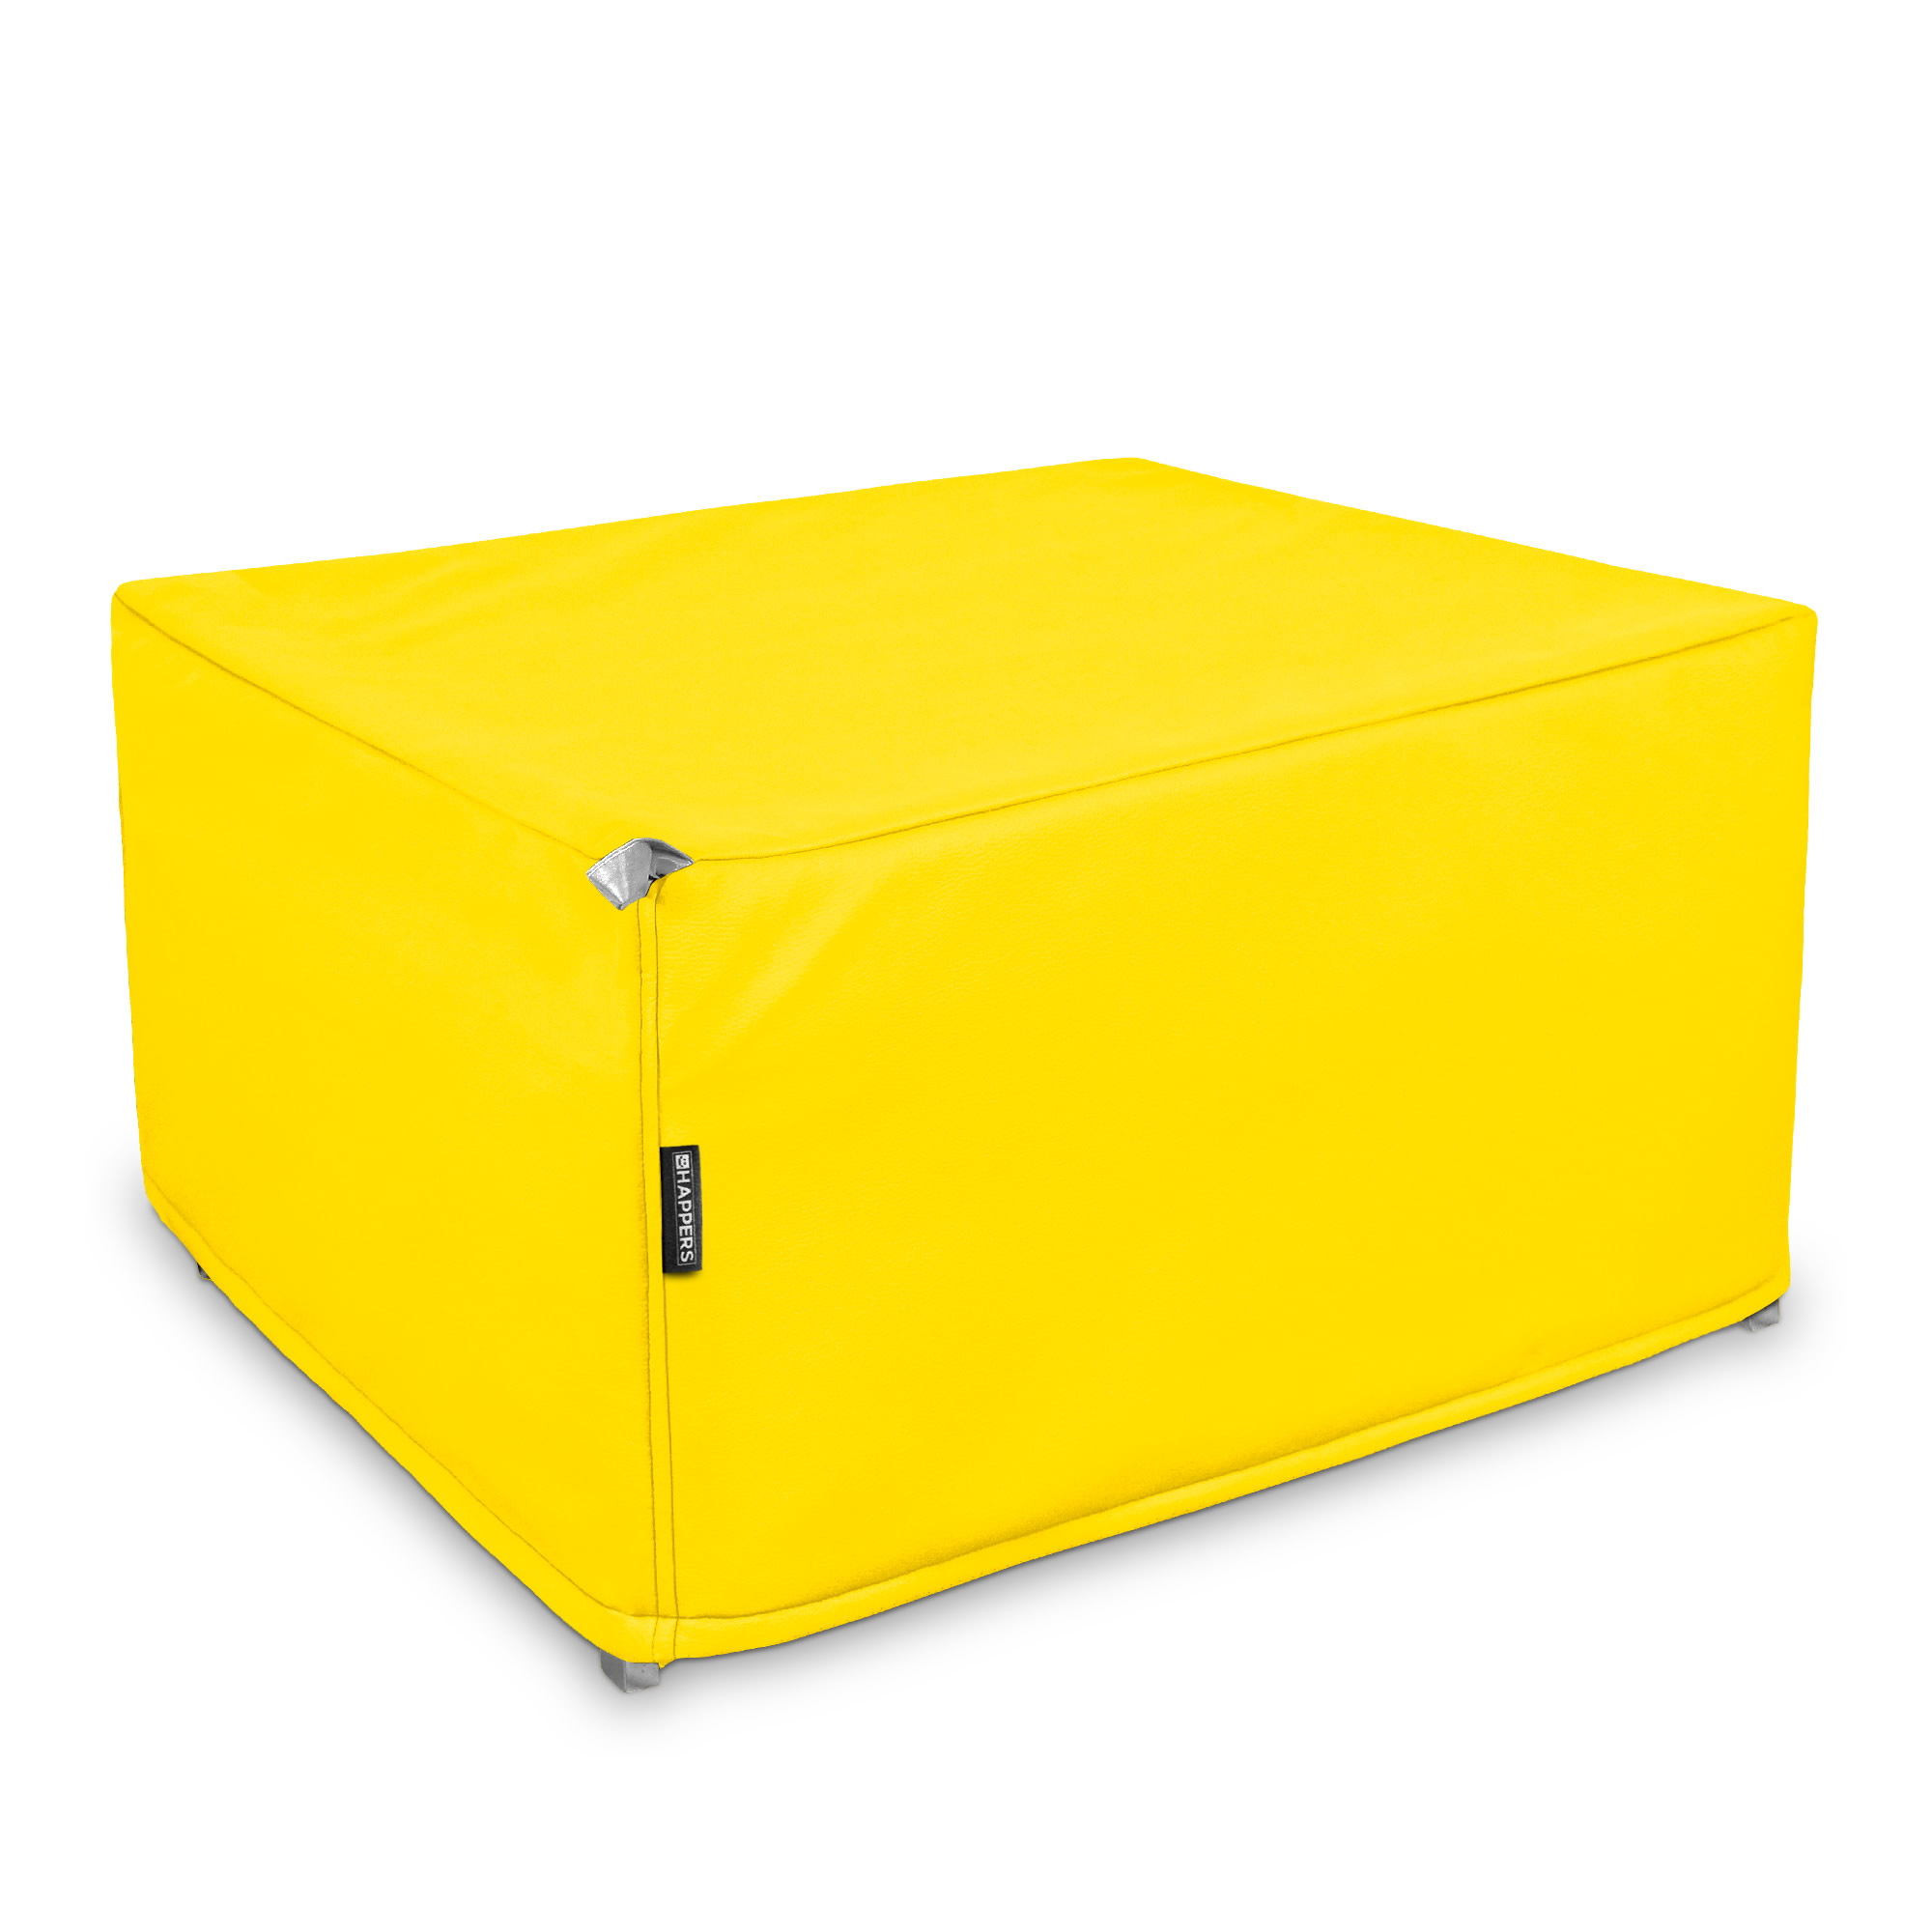 Puff Cama Somier plegable Polipiel Indoor Amarillo en puffdepera.com